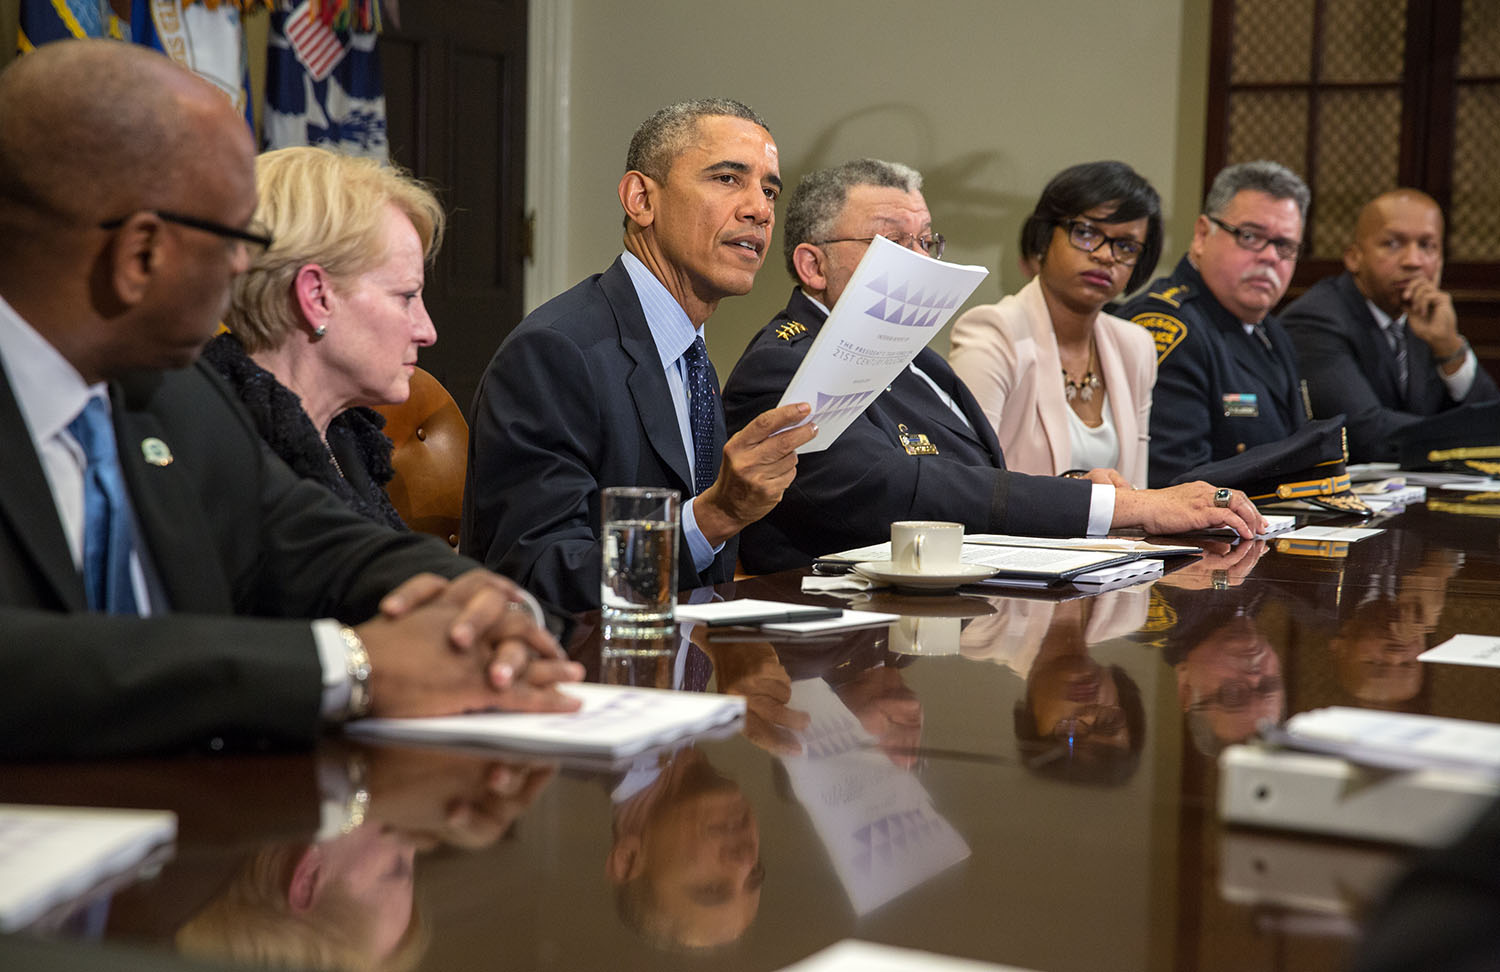 President Obama speaks to the press after a meeting with members of the Task Force on 21st Century Policing